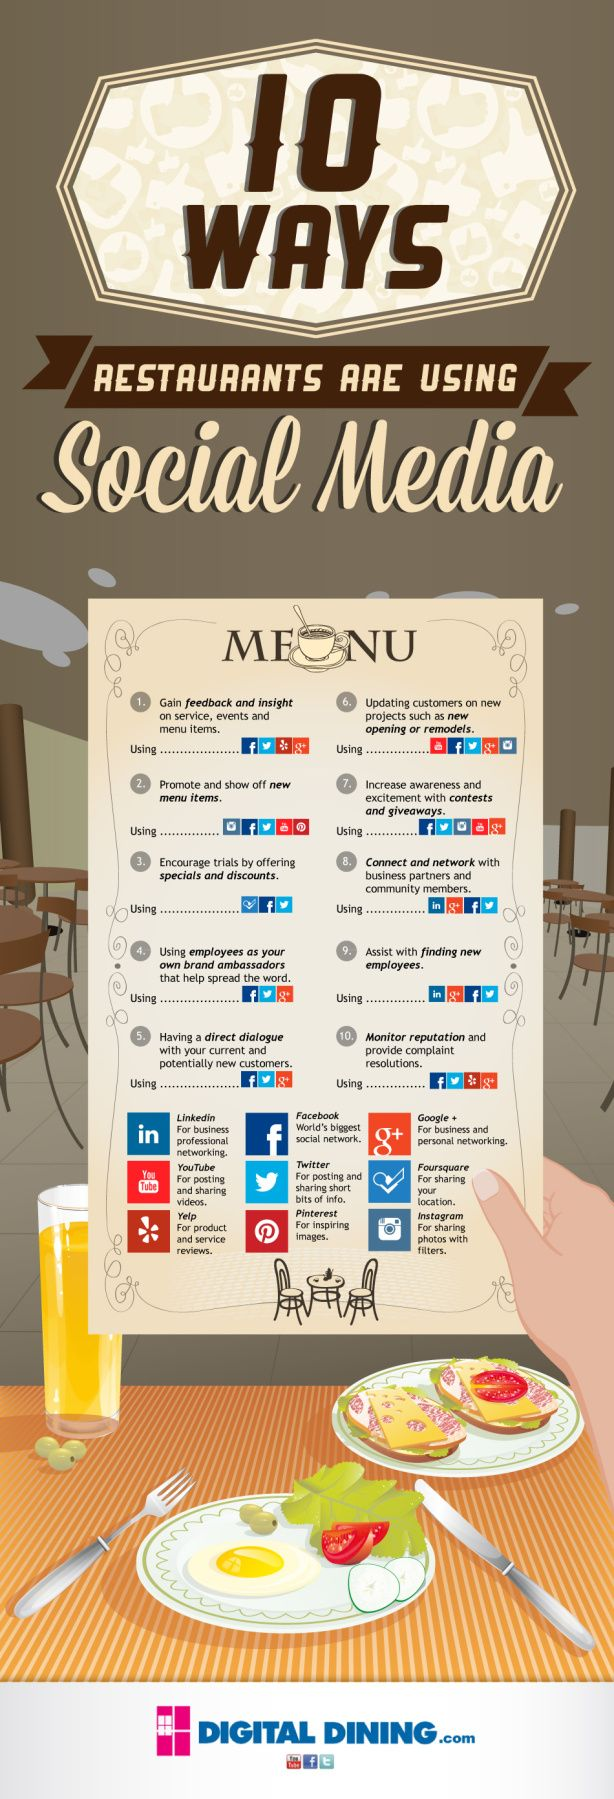 10 Ways Restaurants are Using Social Media Infographic #infographic